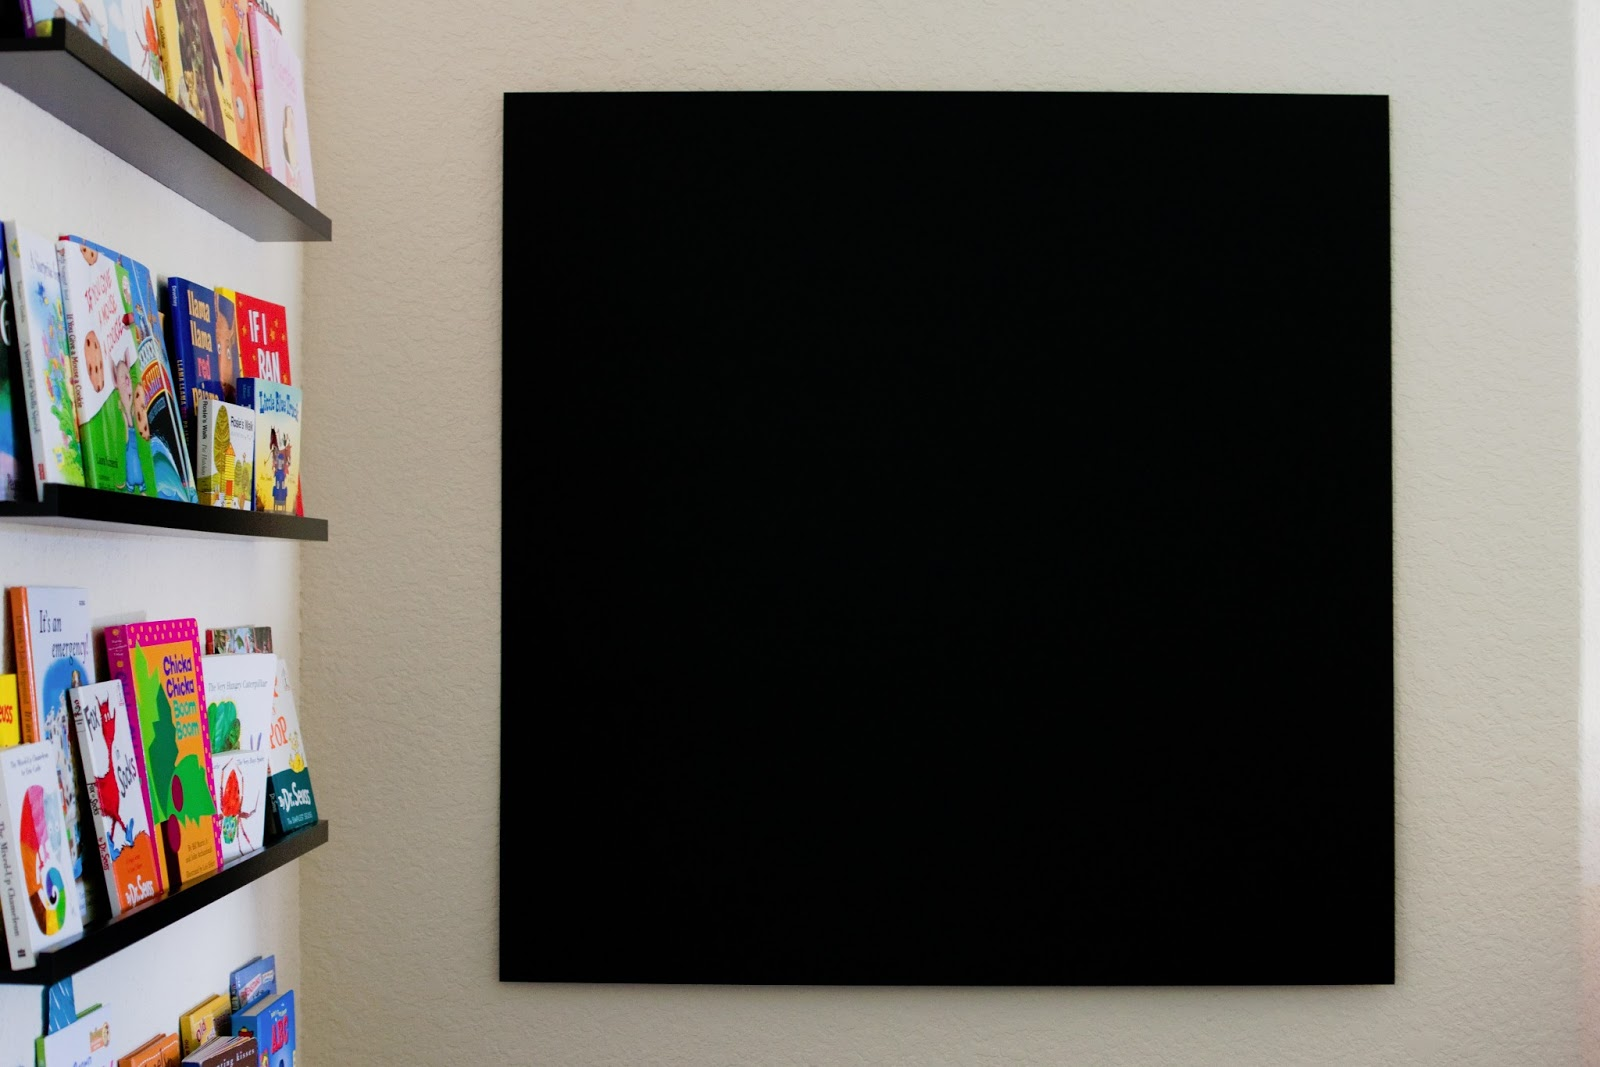 Large Hanging Chalkboard The Sweatman Family How To How Not To Build A Framed Magnetic